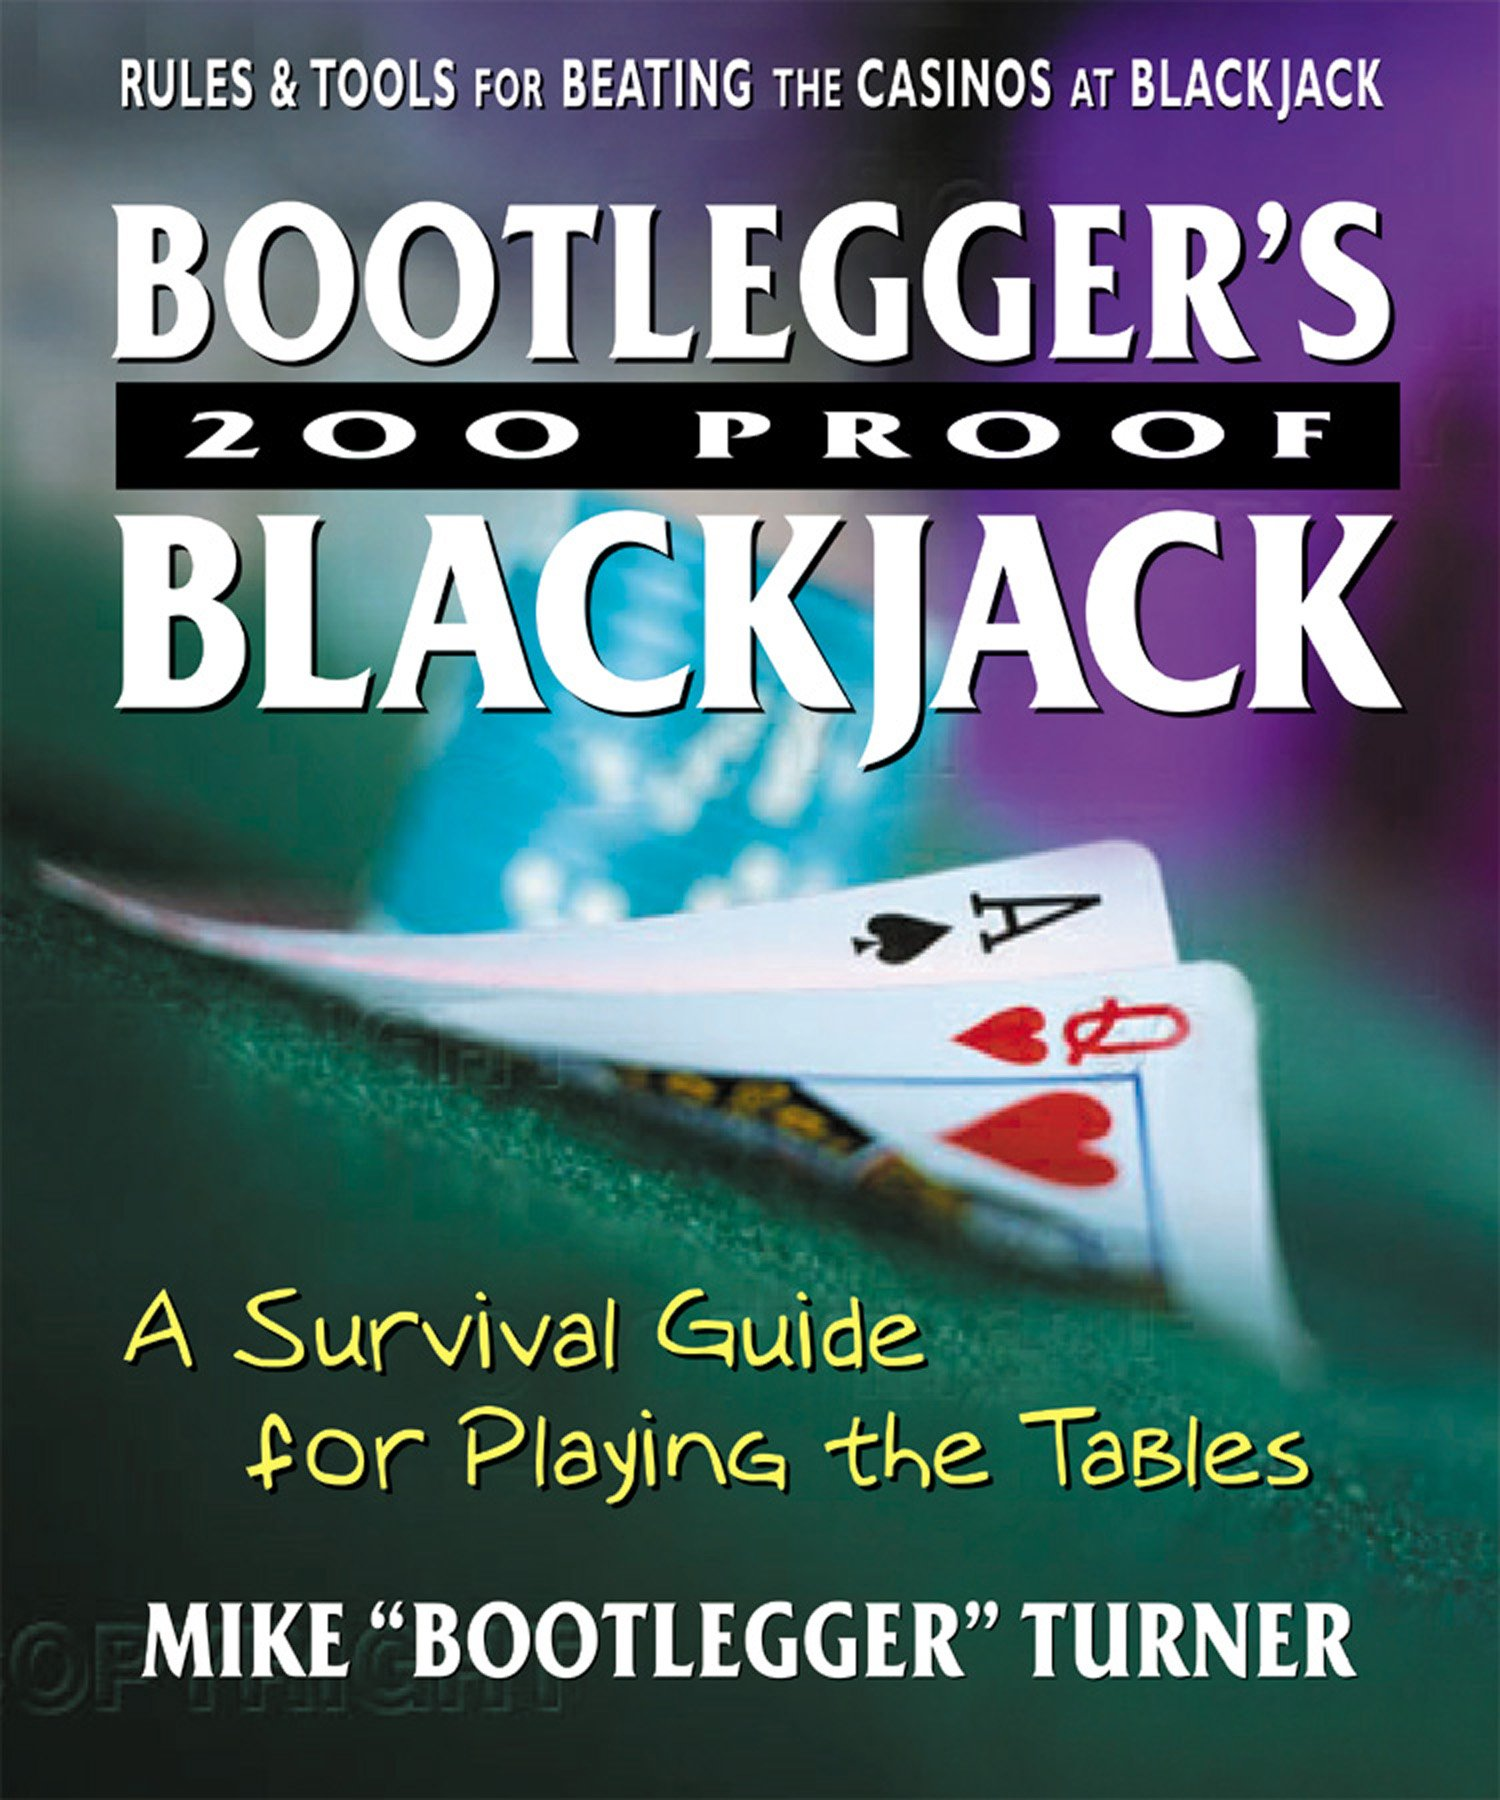 Read Online Bootlegger's 200 Proof Blackjack: A Survival Guide for Playing the Tables PDF